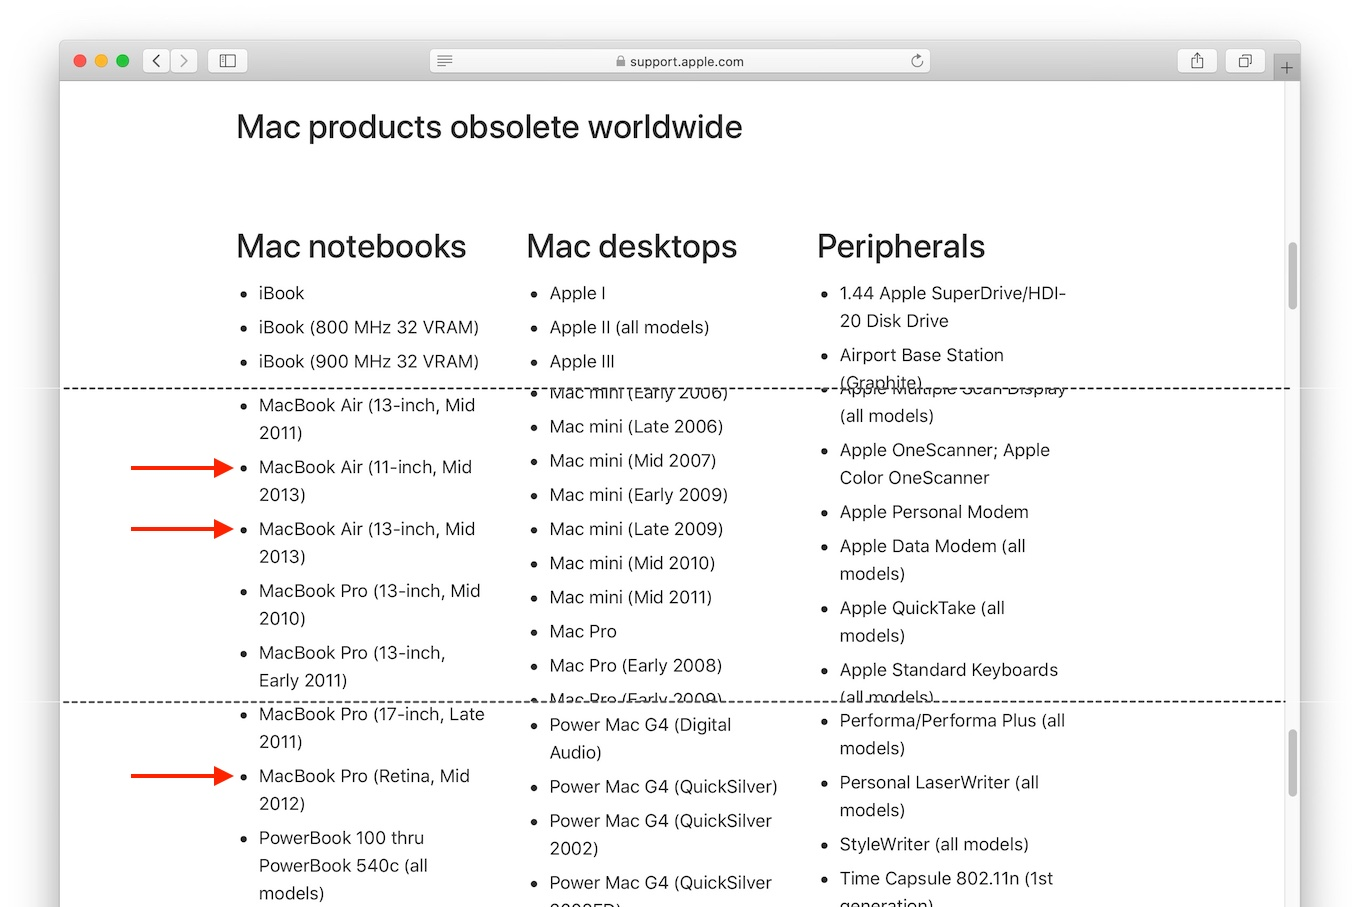 Mac products obsolete worldwide